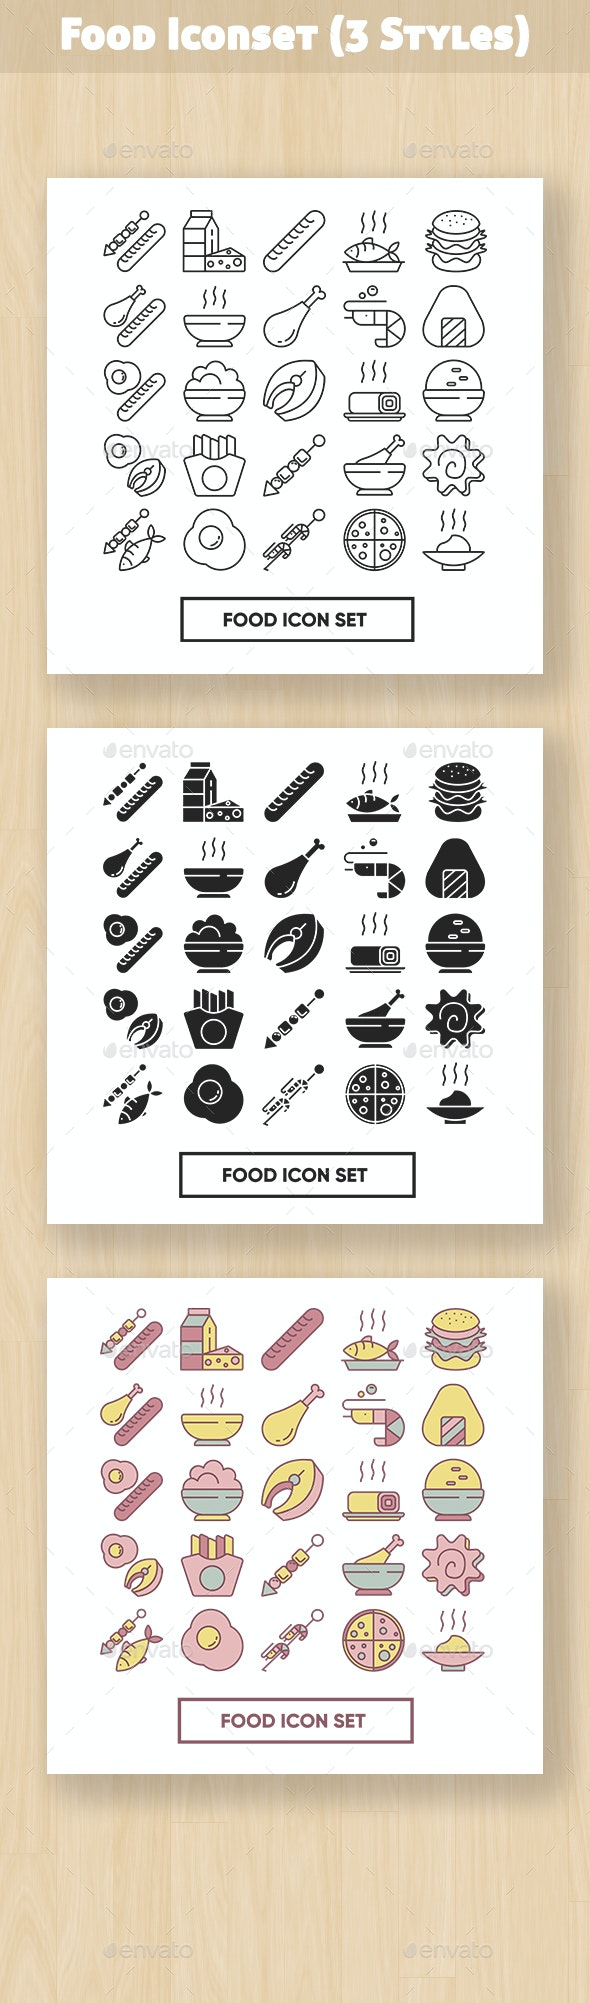 Foods Iconset - Objects Icons